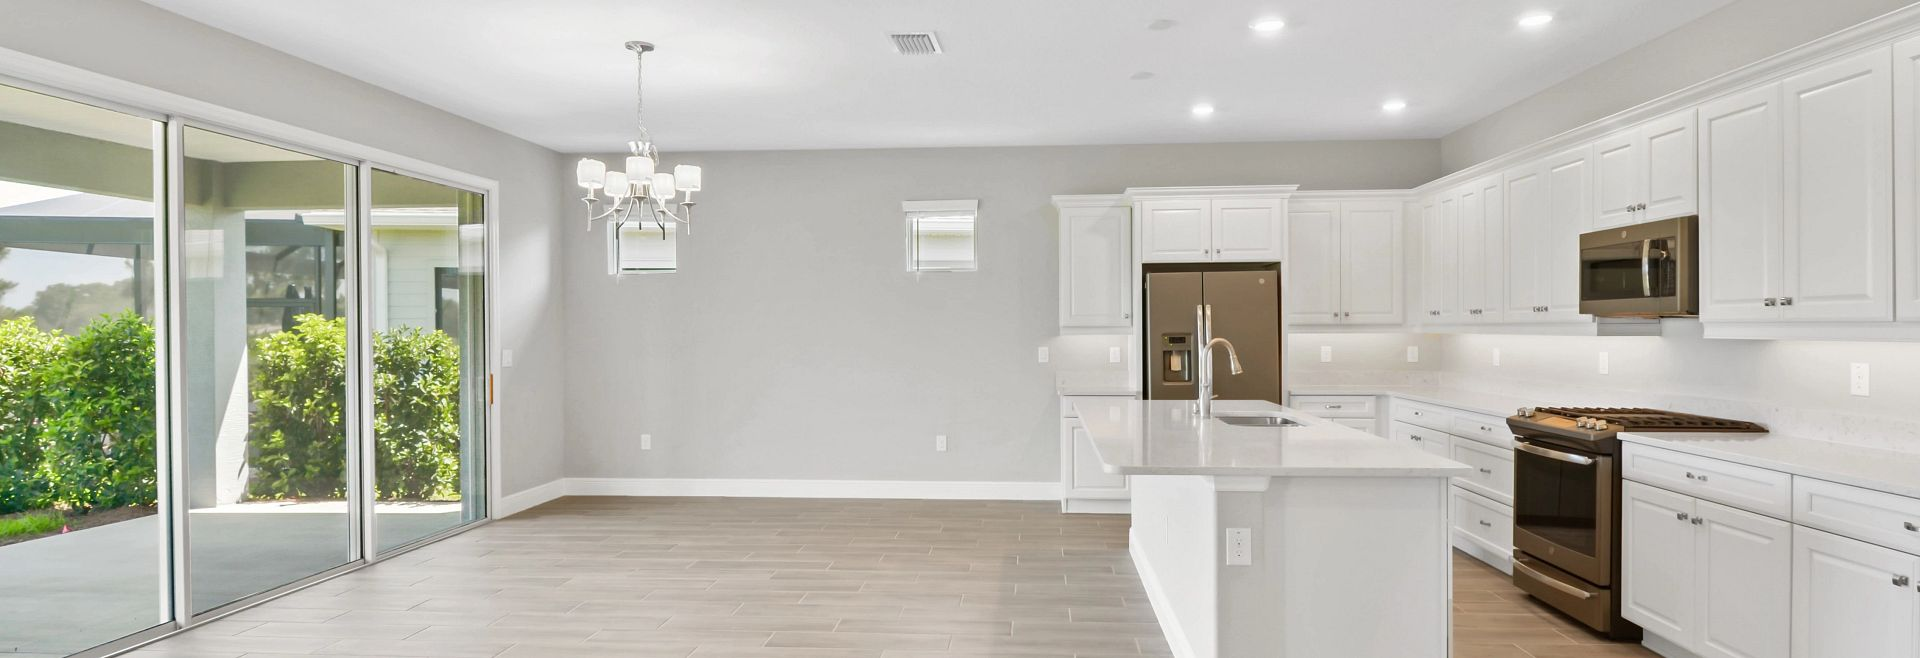 Trilogy at Ocala Preserve Quick Move In Home Liberty HS 163 Great Room